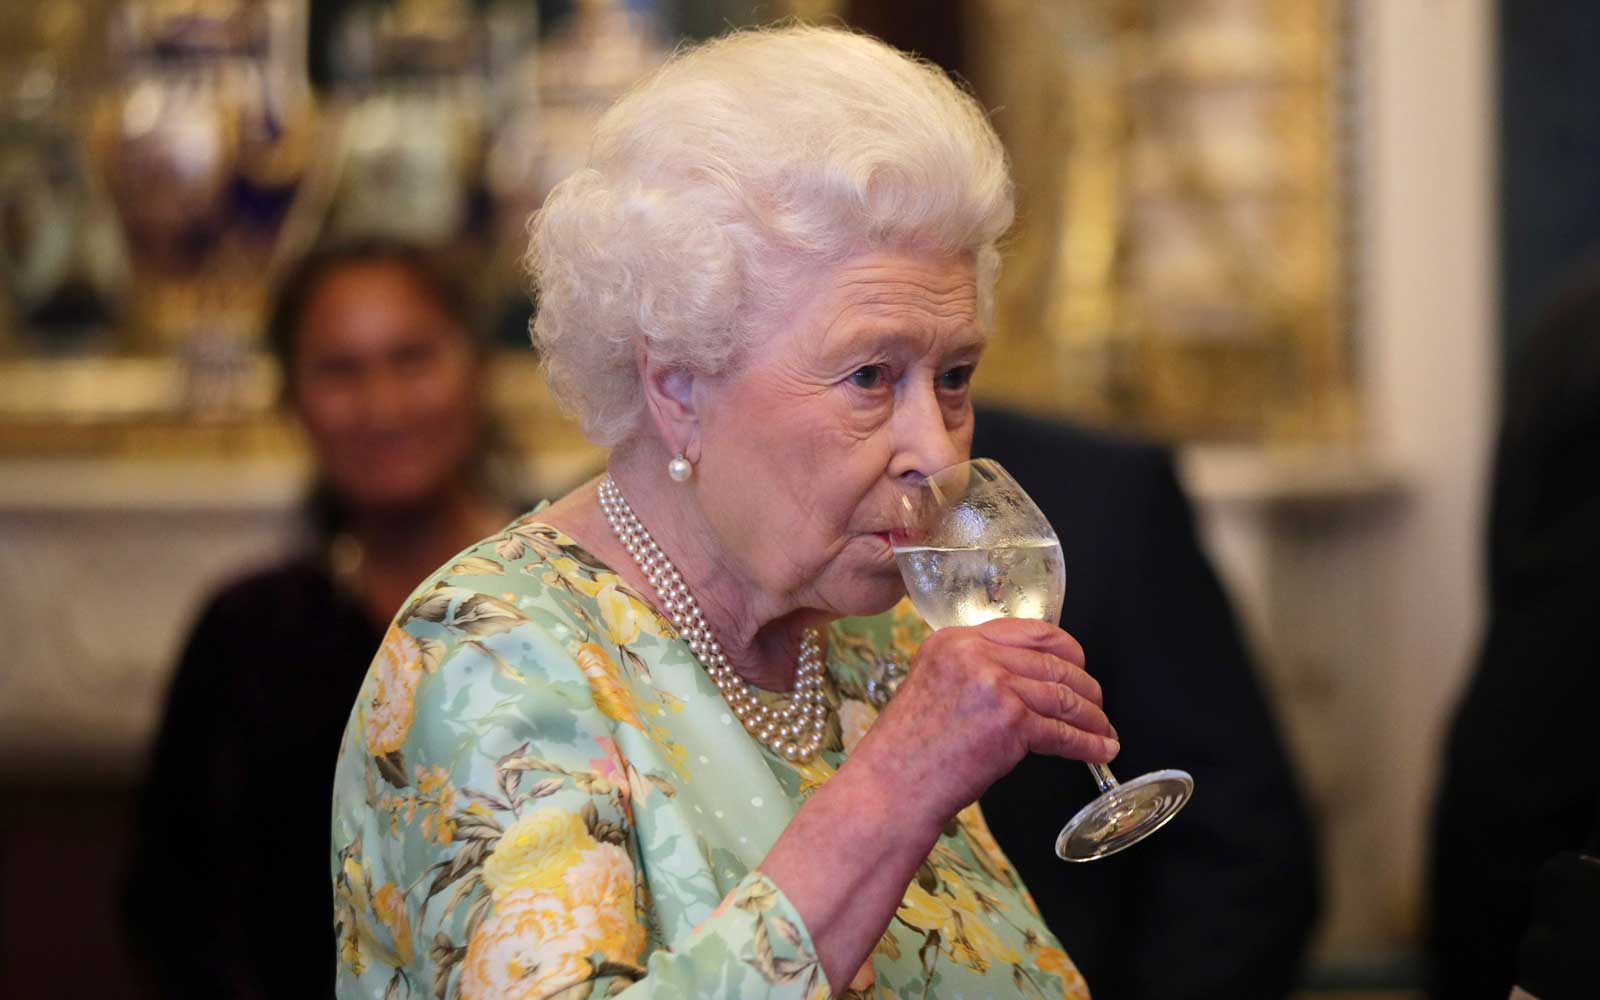 The Queen of England's Favorite Drink Might Be the Secret to a Long Life